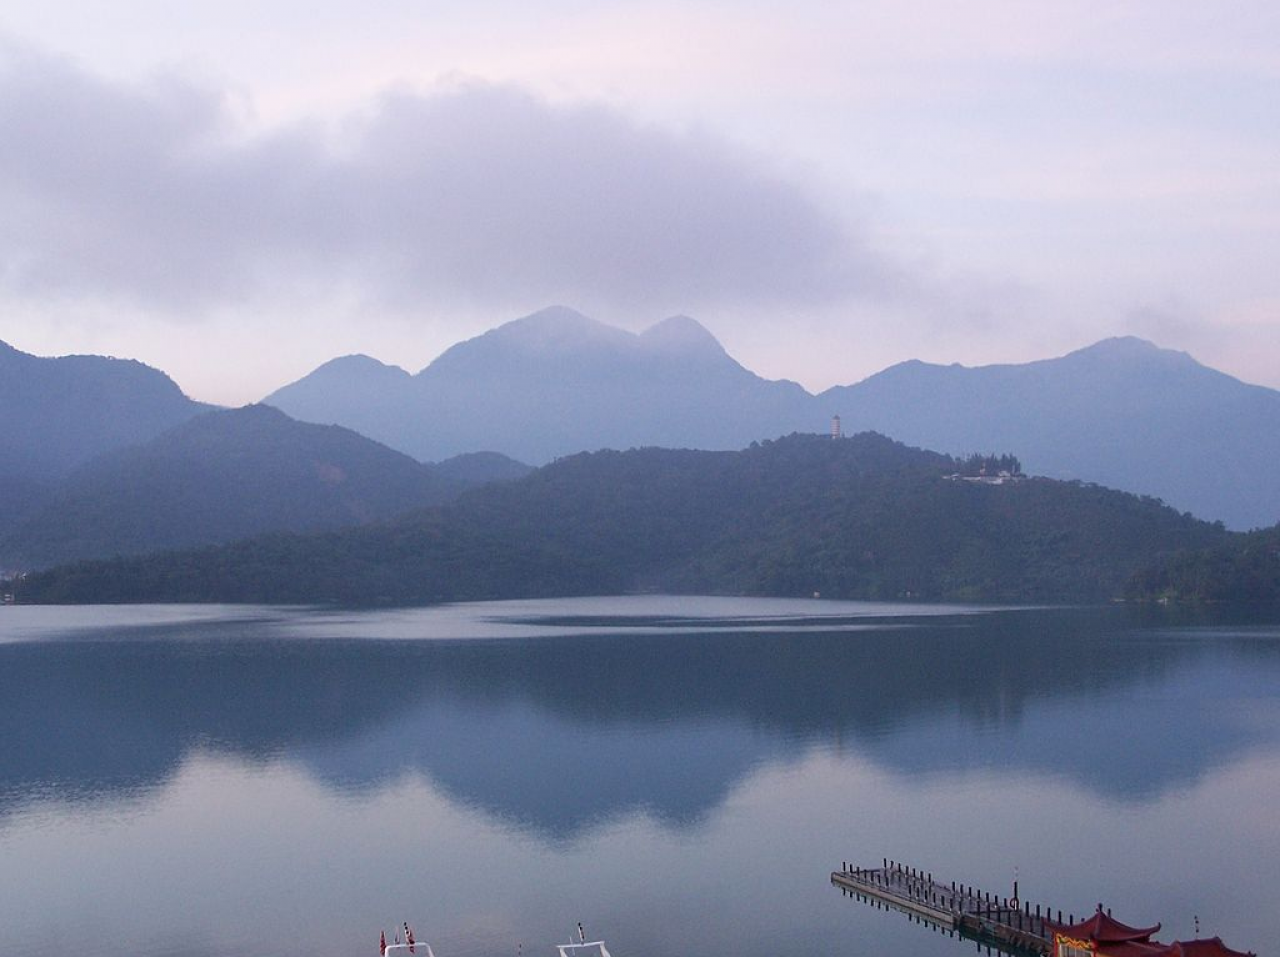 The Sun Moon Lake is surrounded by mountains.